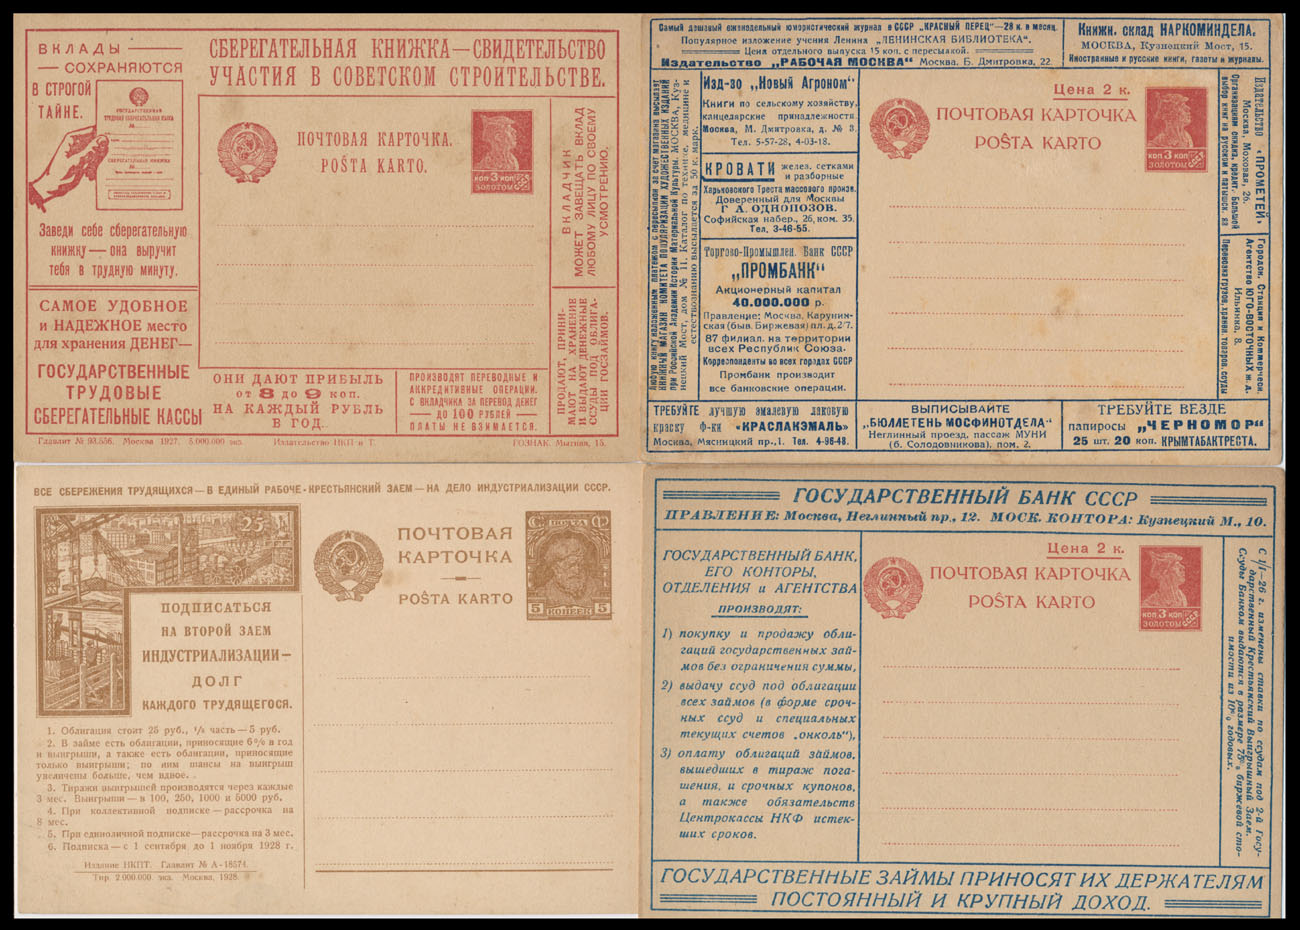 ccf668cd2b469 Lot 615 - russia - soviet union stationery items - Raritan Stamps Inc. Live  Bidding